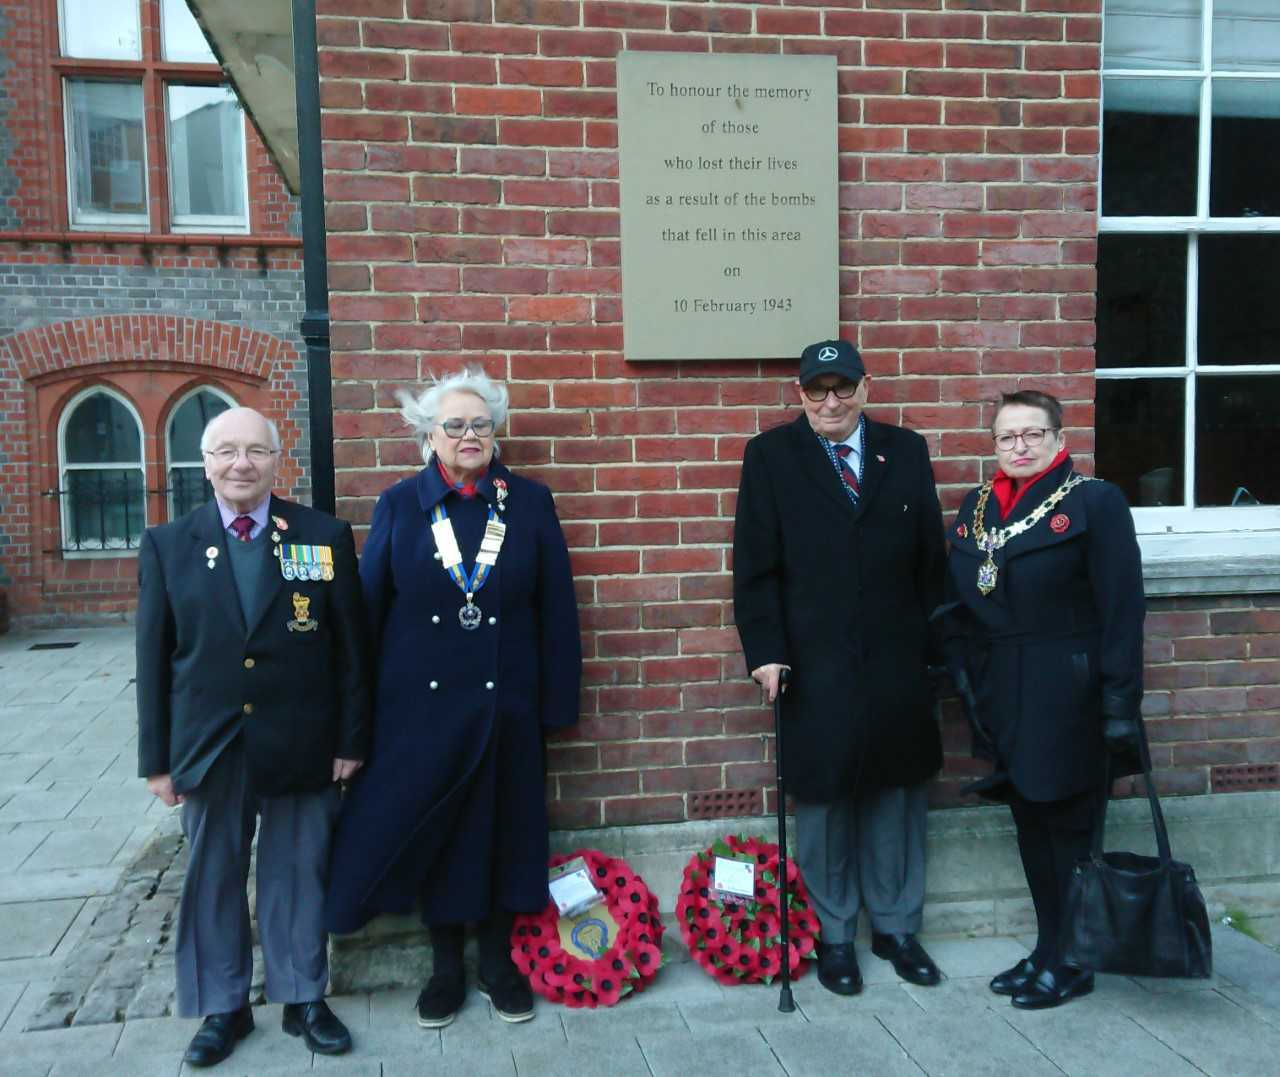 Mayor Debs Edwards (right) with representatives from the Royal British Legion